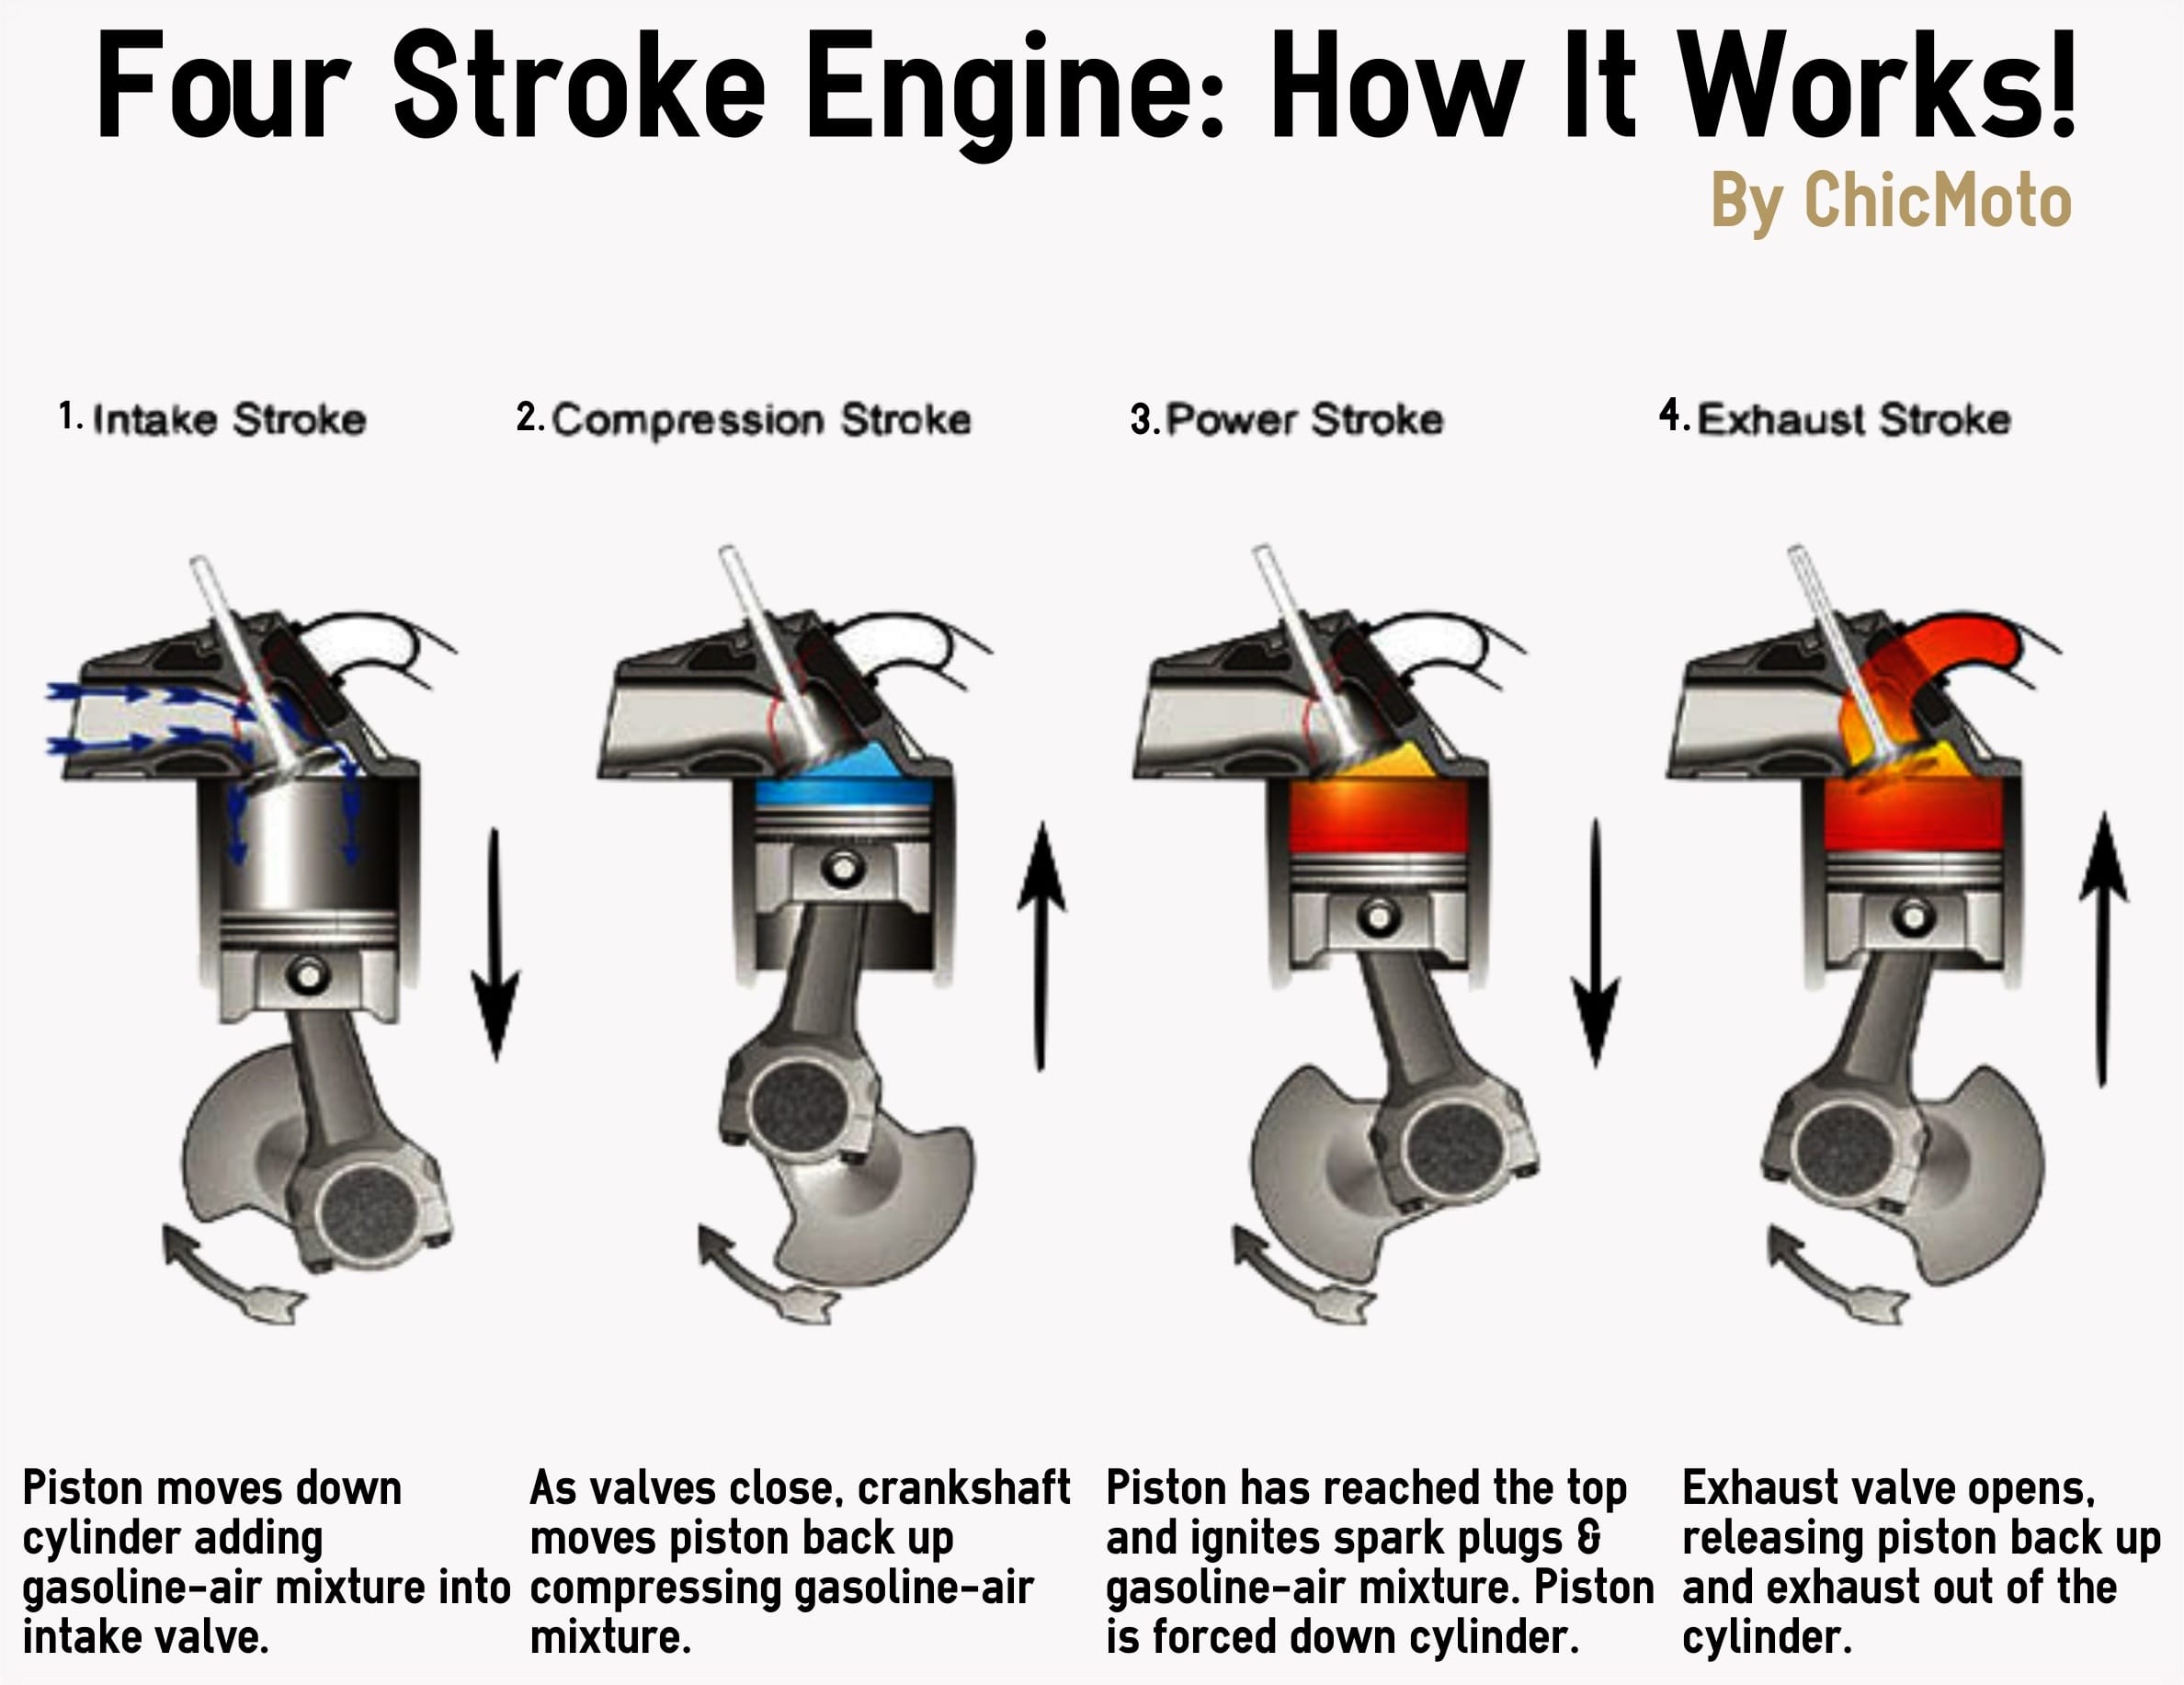 Part 3: How Your Engine Works